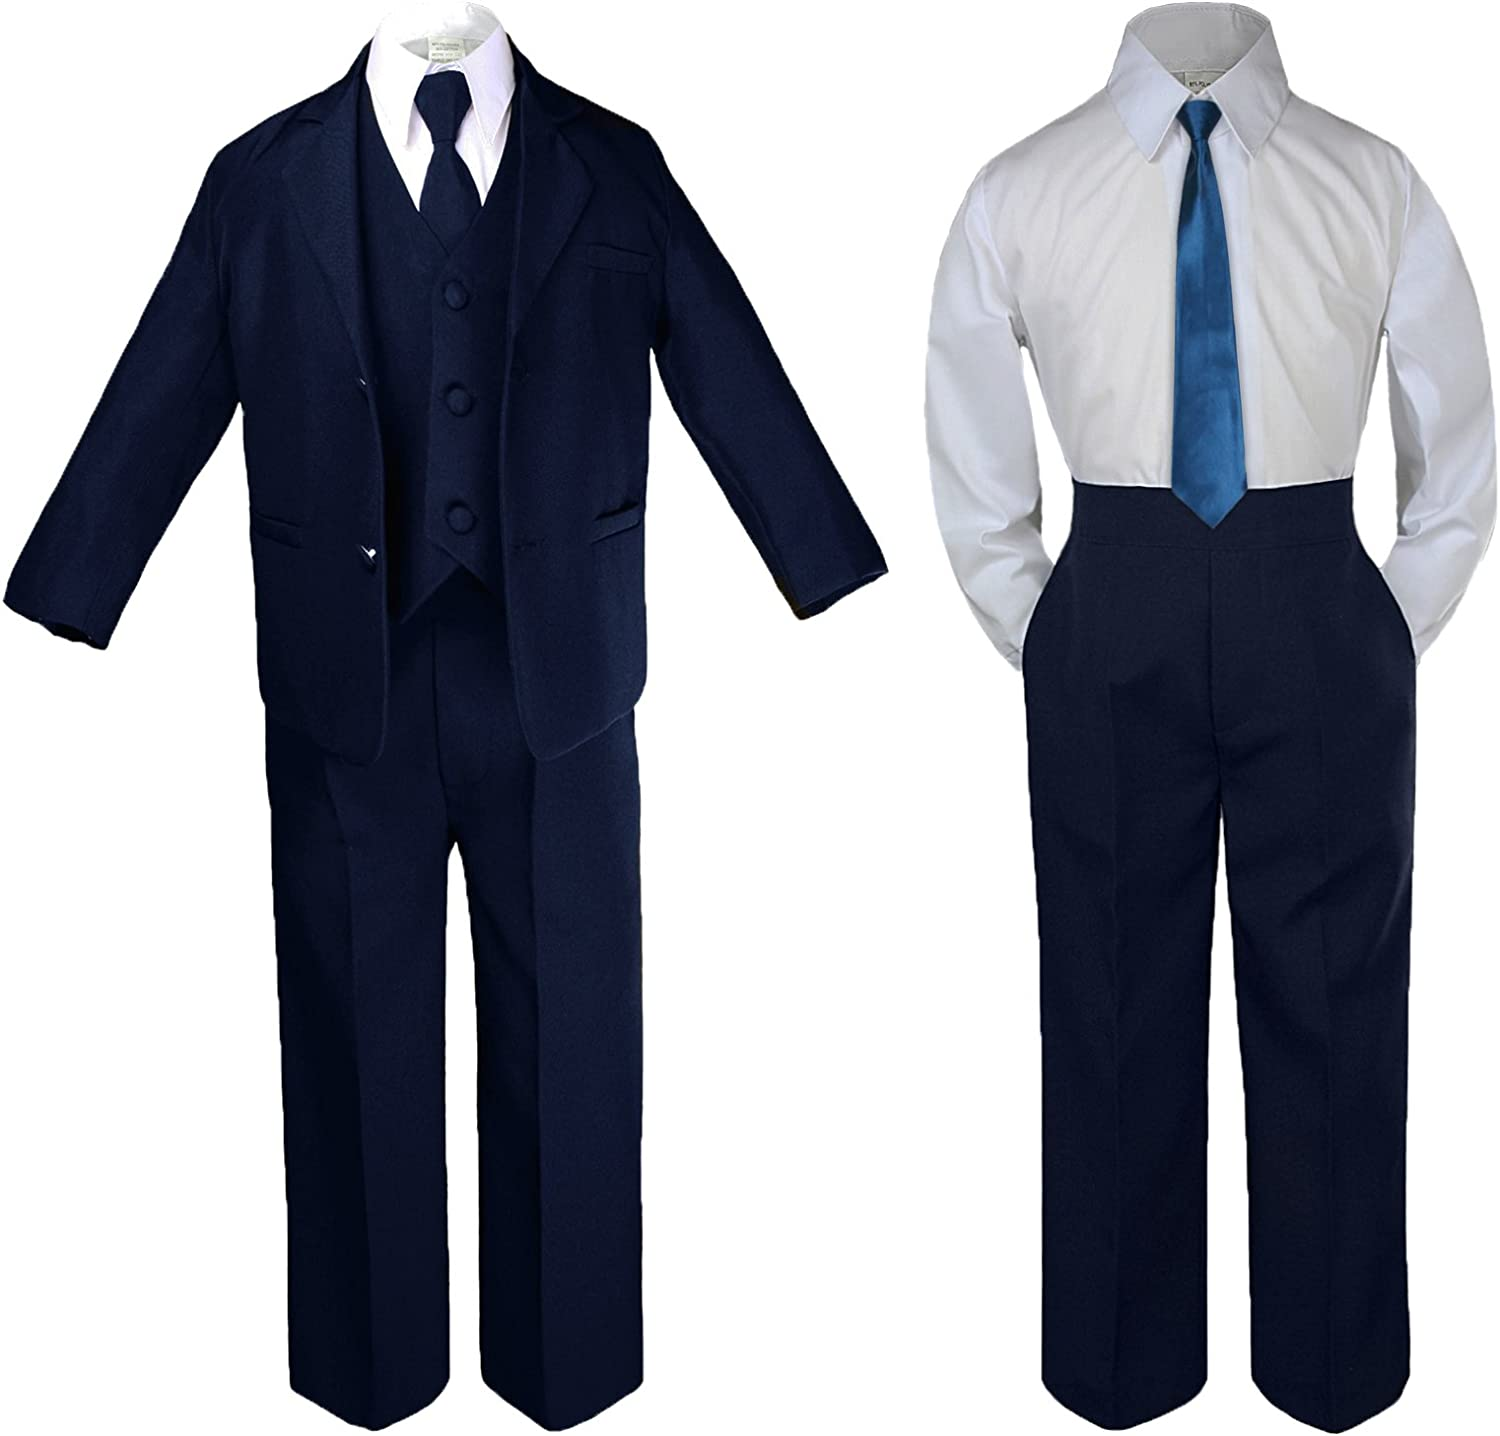 Unotux 6pc Baby Infant Toddler Boy Teen Party Wedding Navy Suit Extra Neck Tie Sm-4T